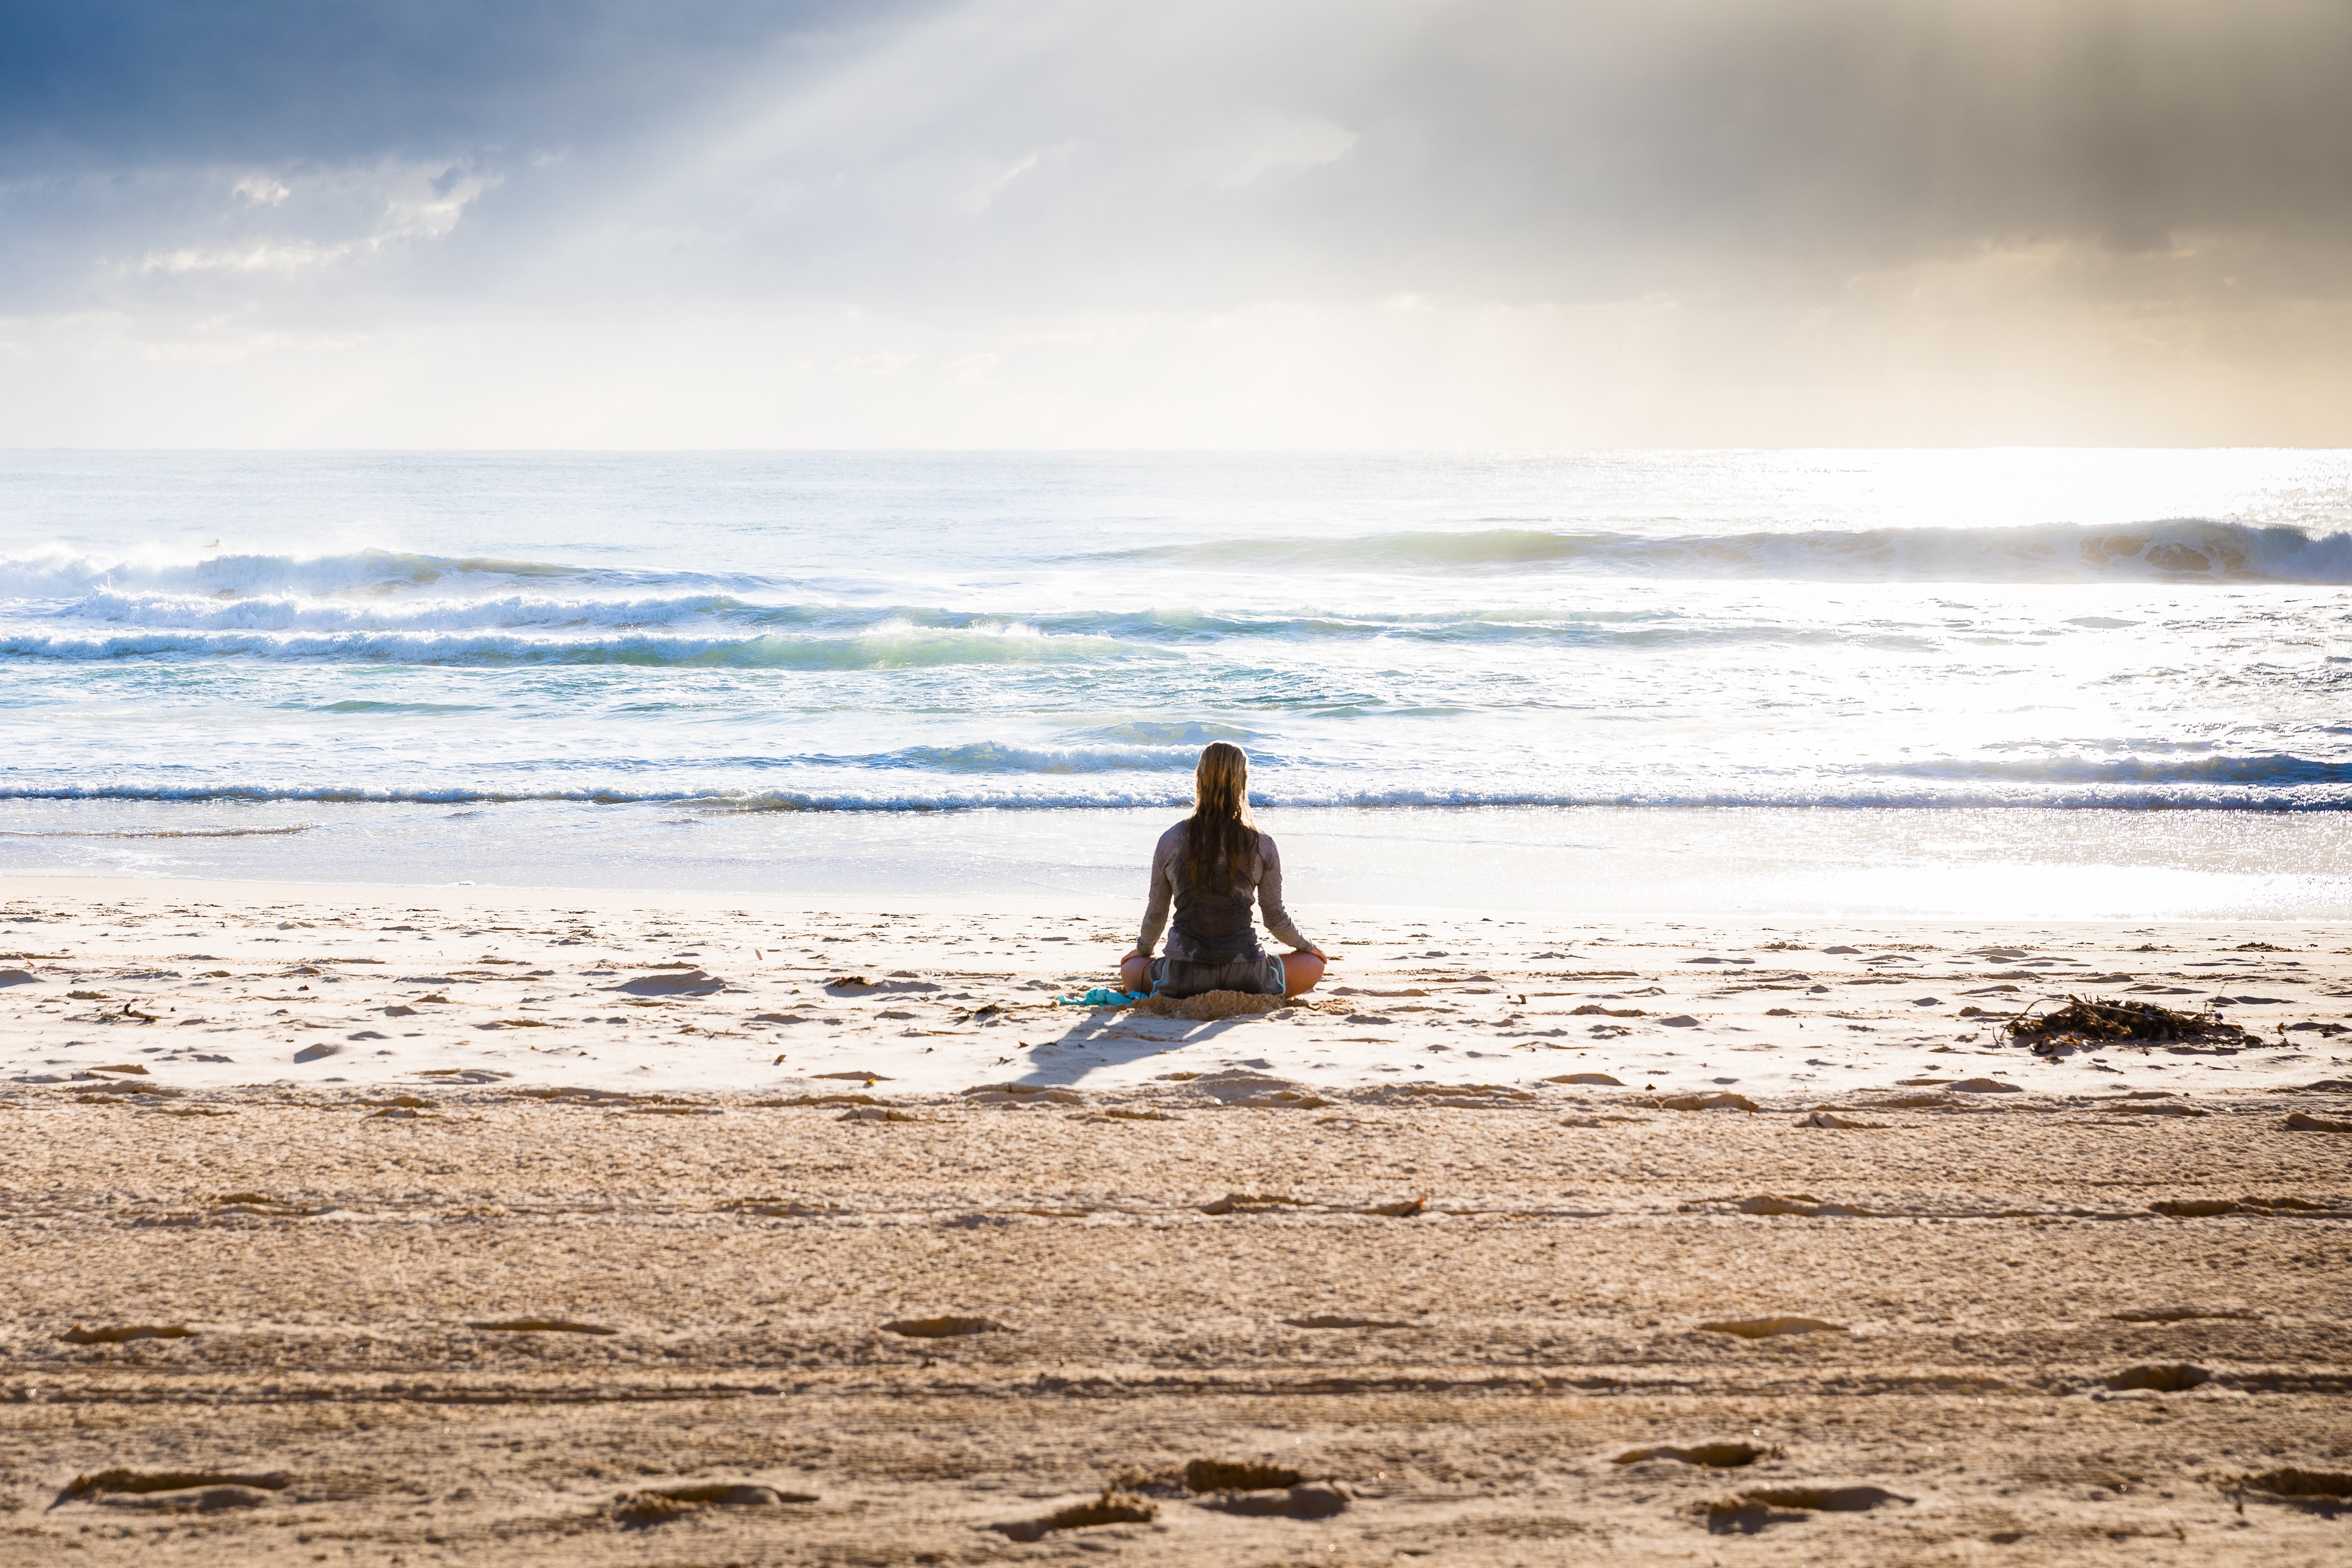 Person sitting on beach in a meditative pose.